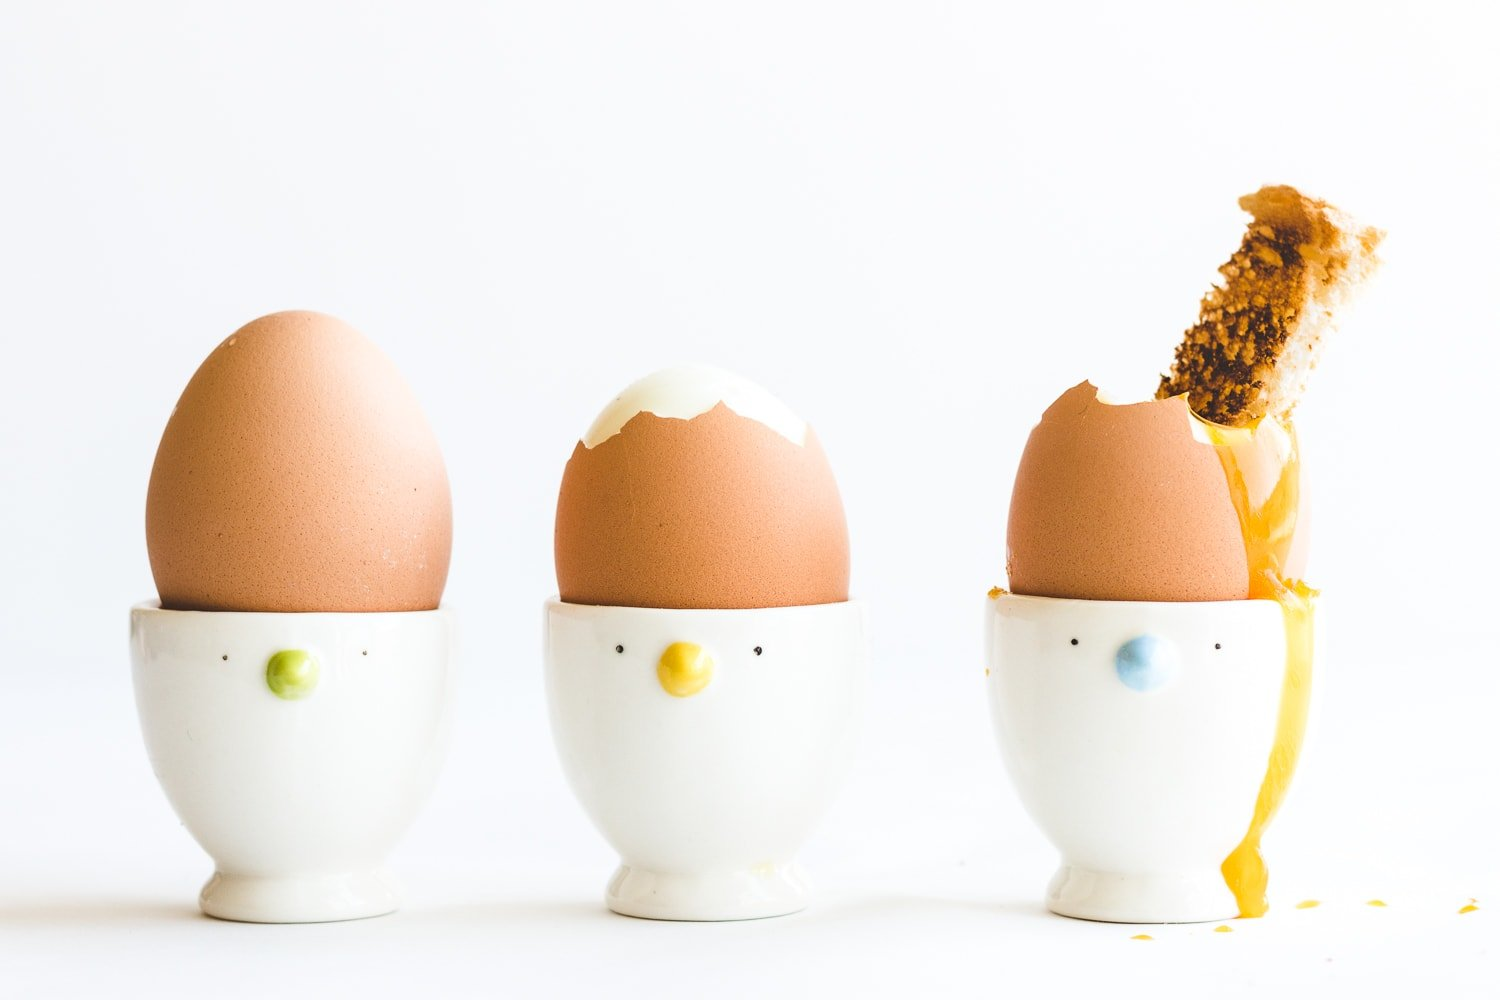 Three soft boiled eggs in egg cups.